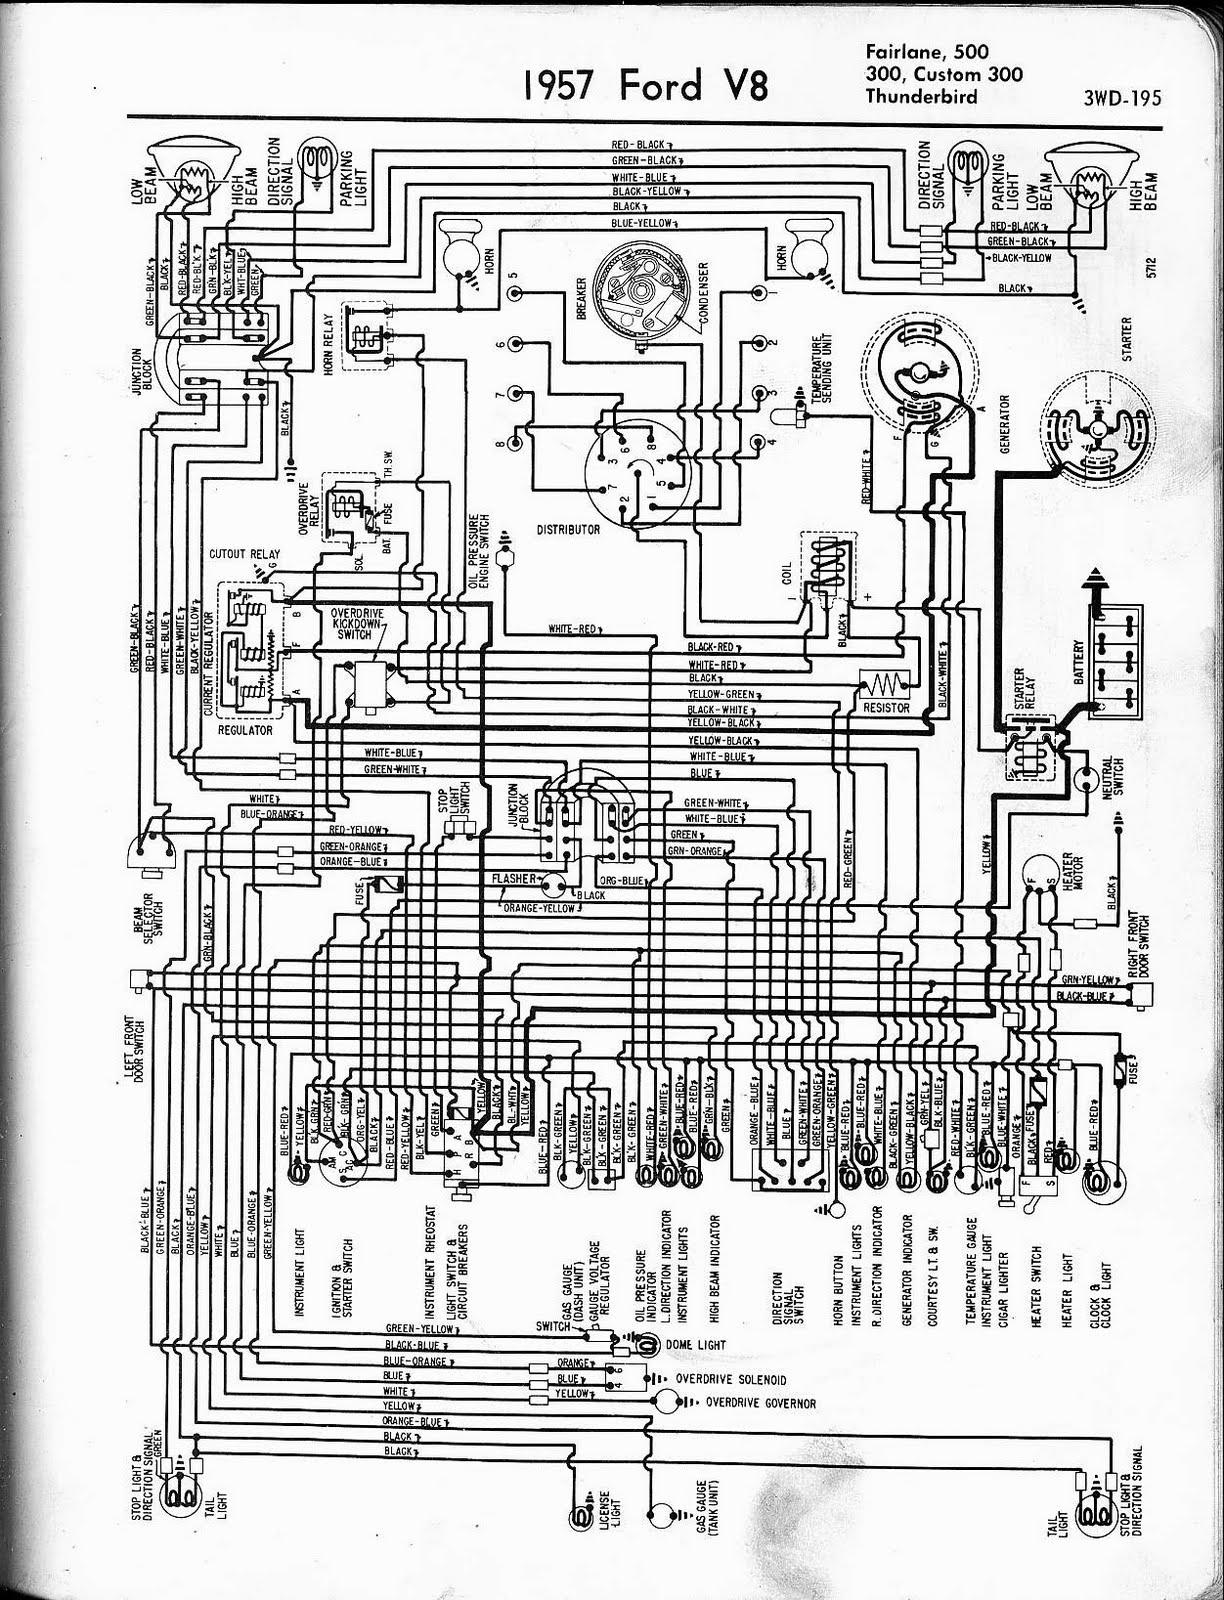 1957 ford ranchero wiring schematic wiring diagram operations 1957 ford wiring schematic wiring diagram meta 1957 ford ranchero wiring schematic